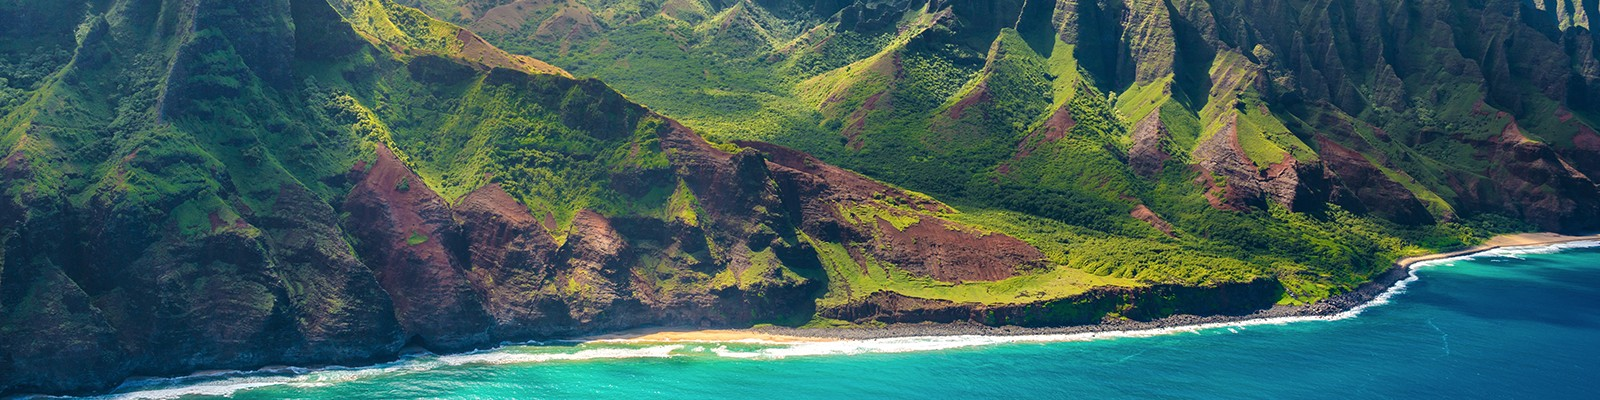 hawaii-luxury holidays header